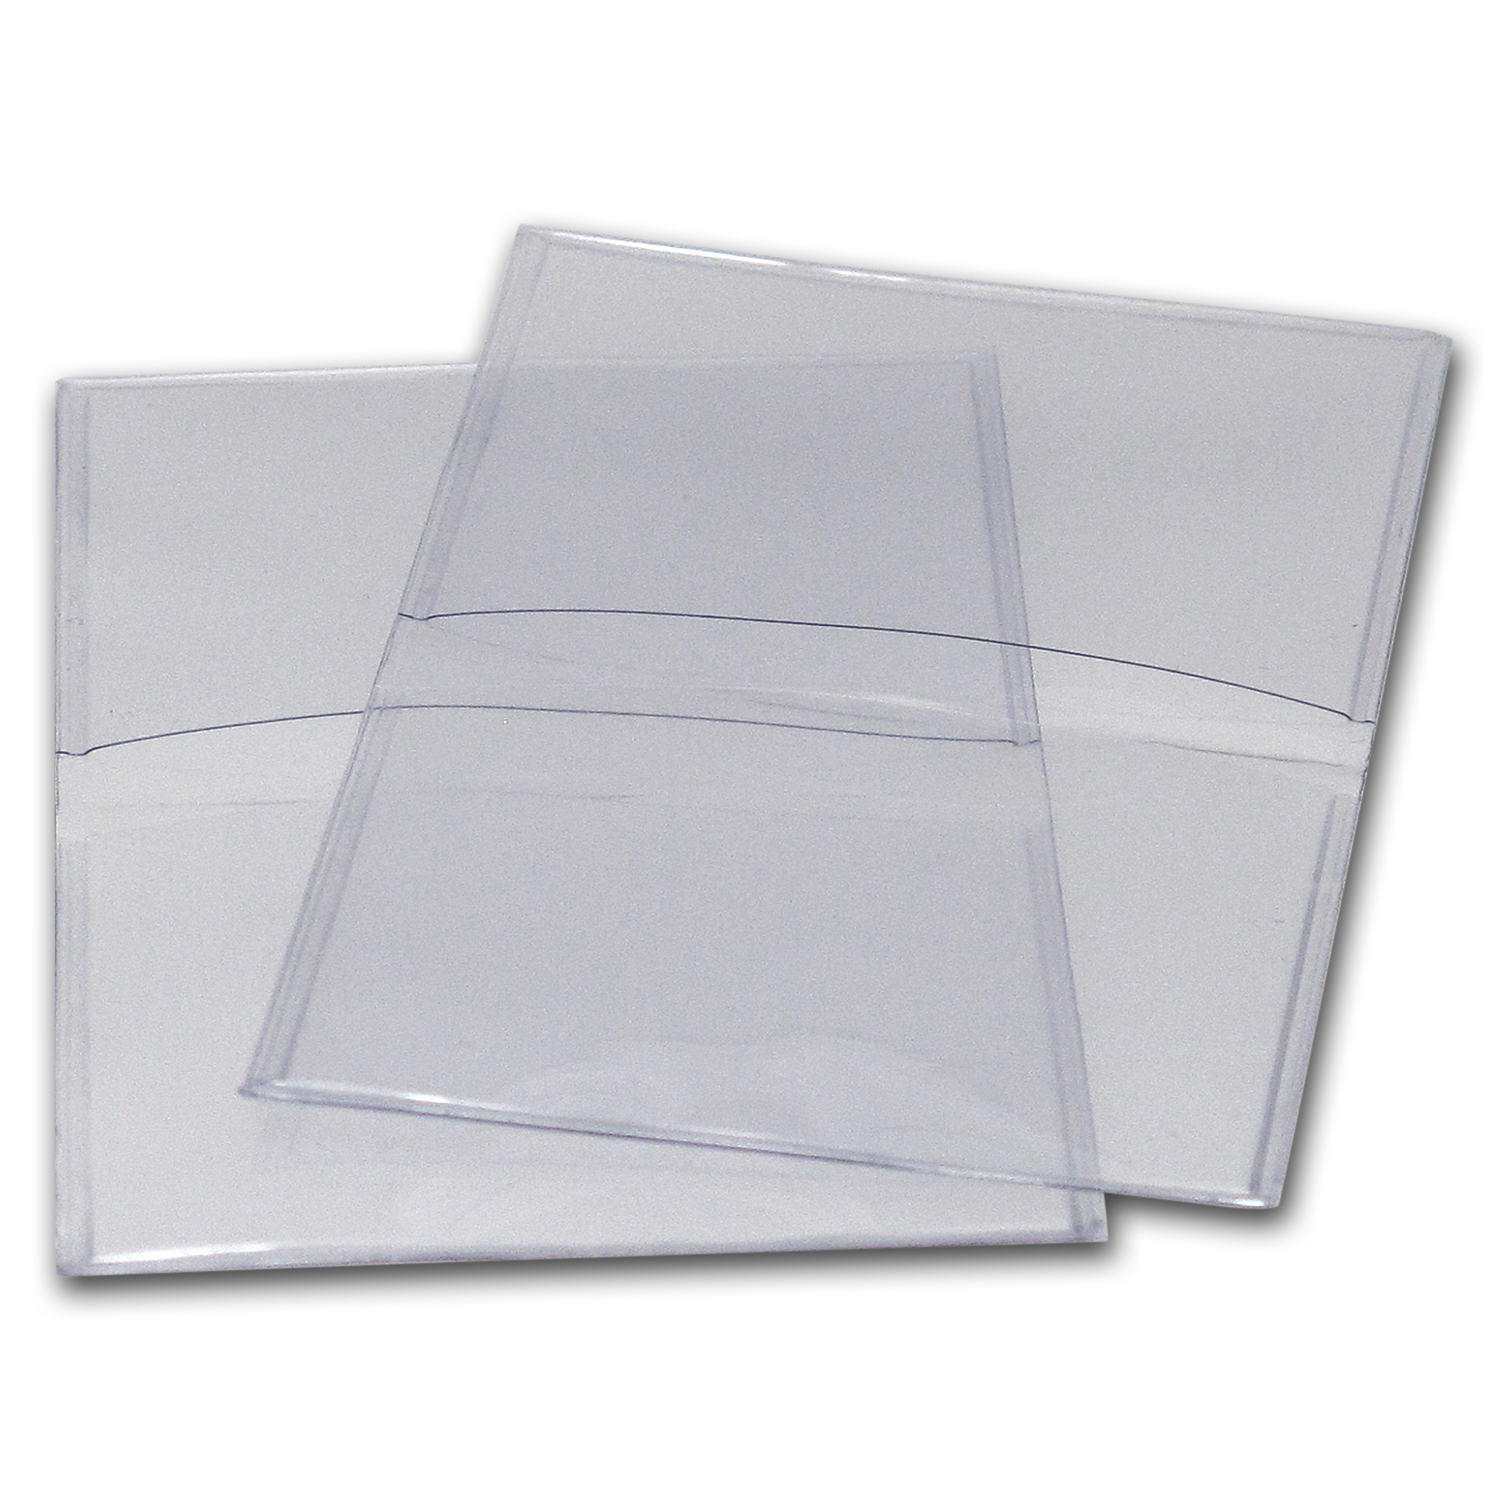 2 X 2 Unplasticized Flips (#28UN) No Inserts - (1,000 count)